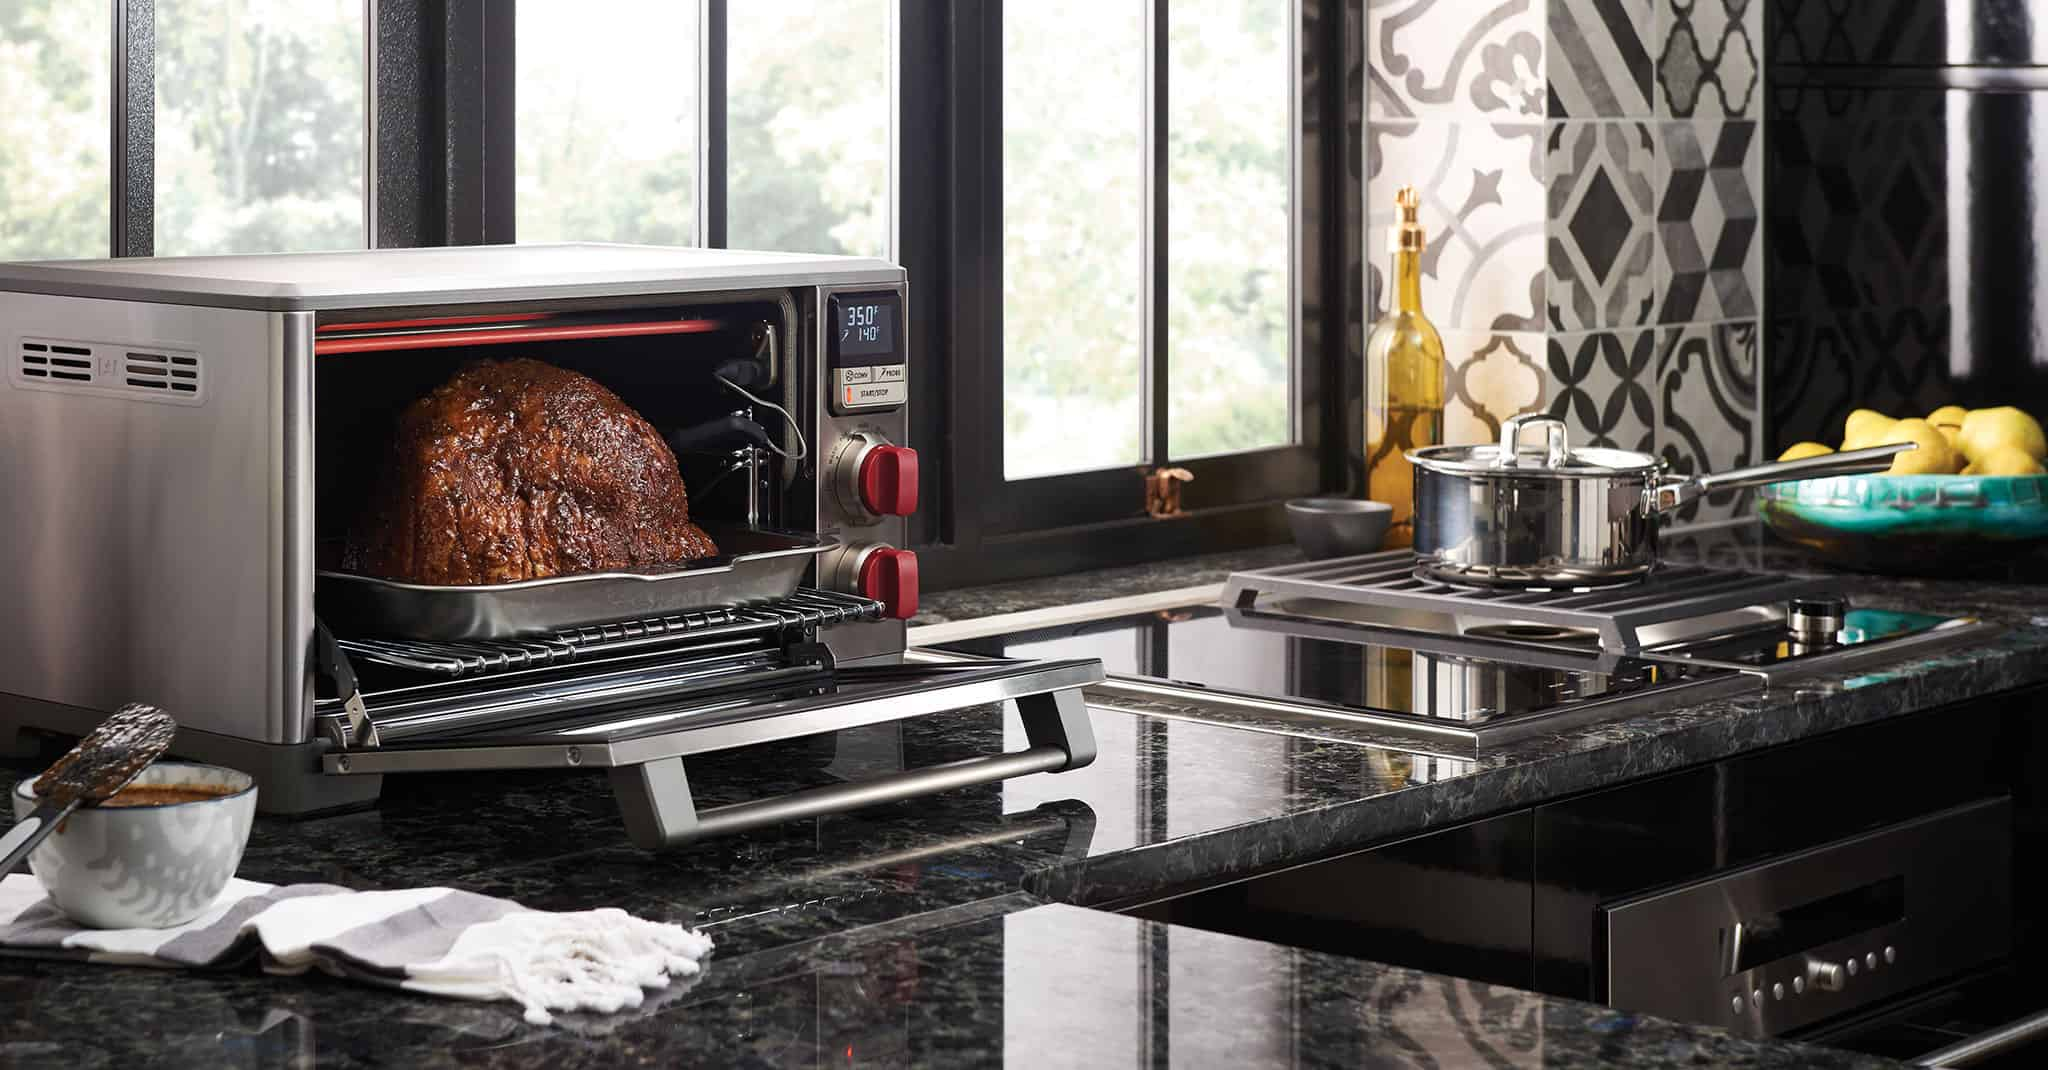 how to use countertop convection oven